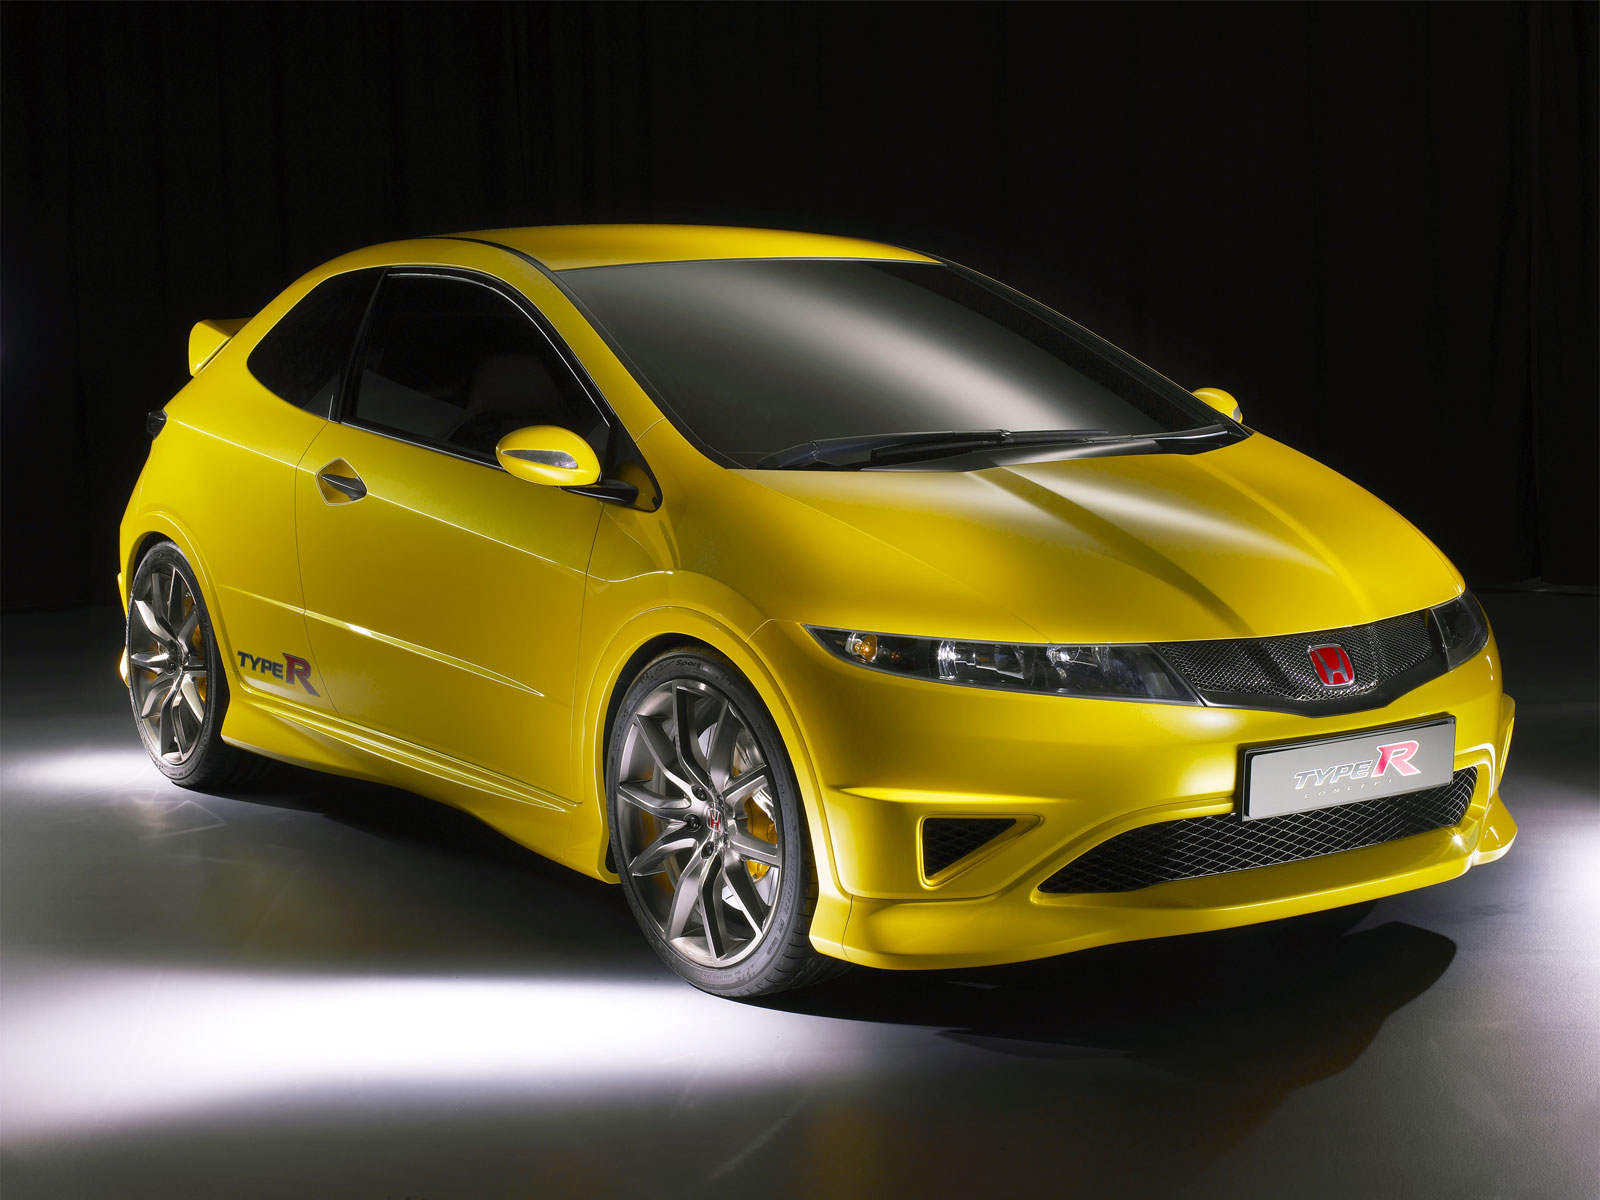 Honda Civic Type R Cars Pictures Wallpapper HD Free Wallpaper